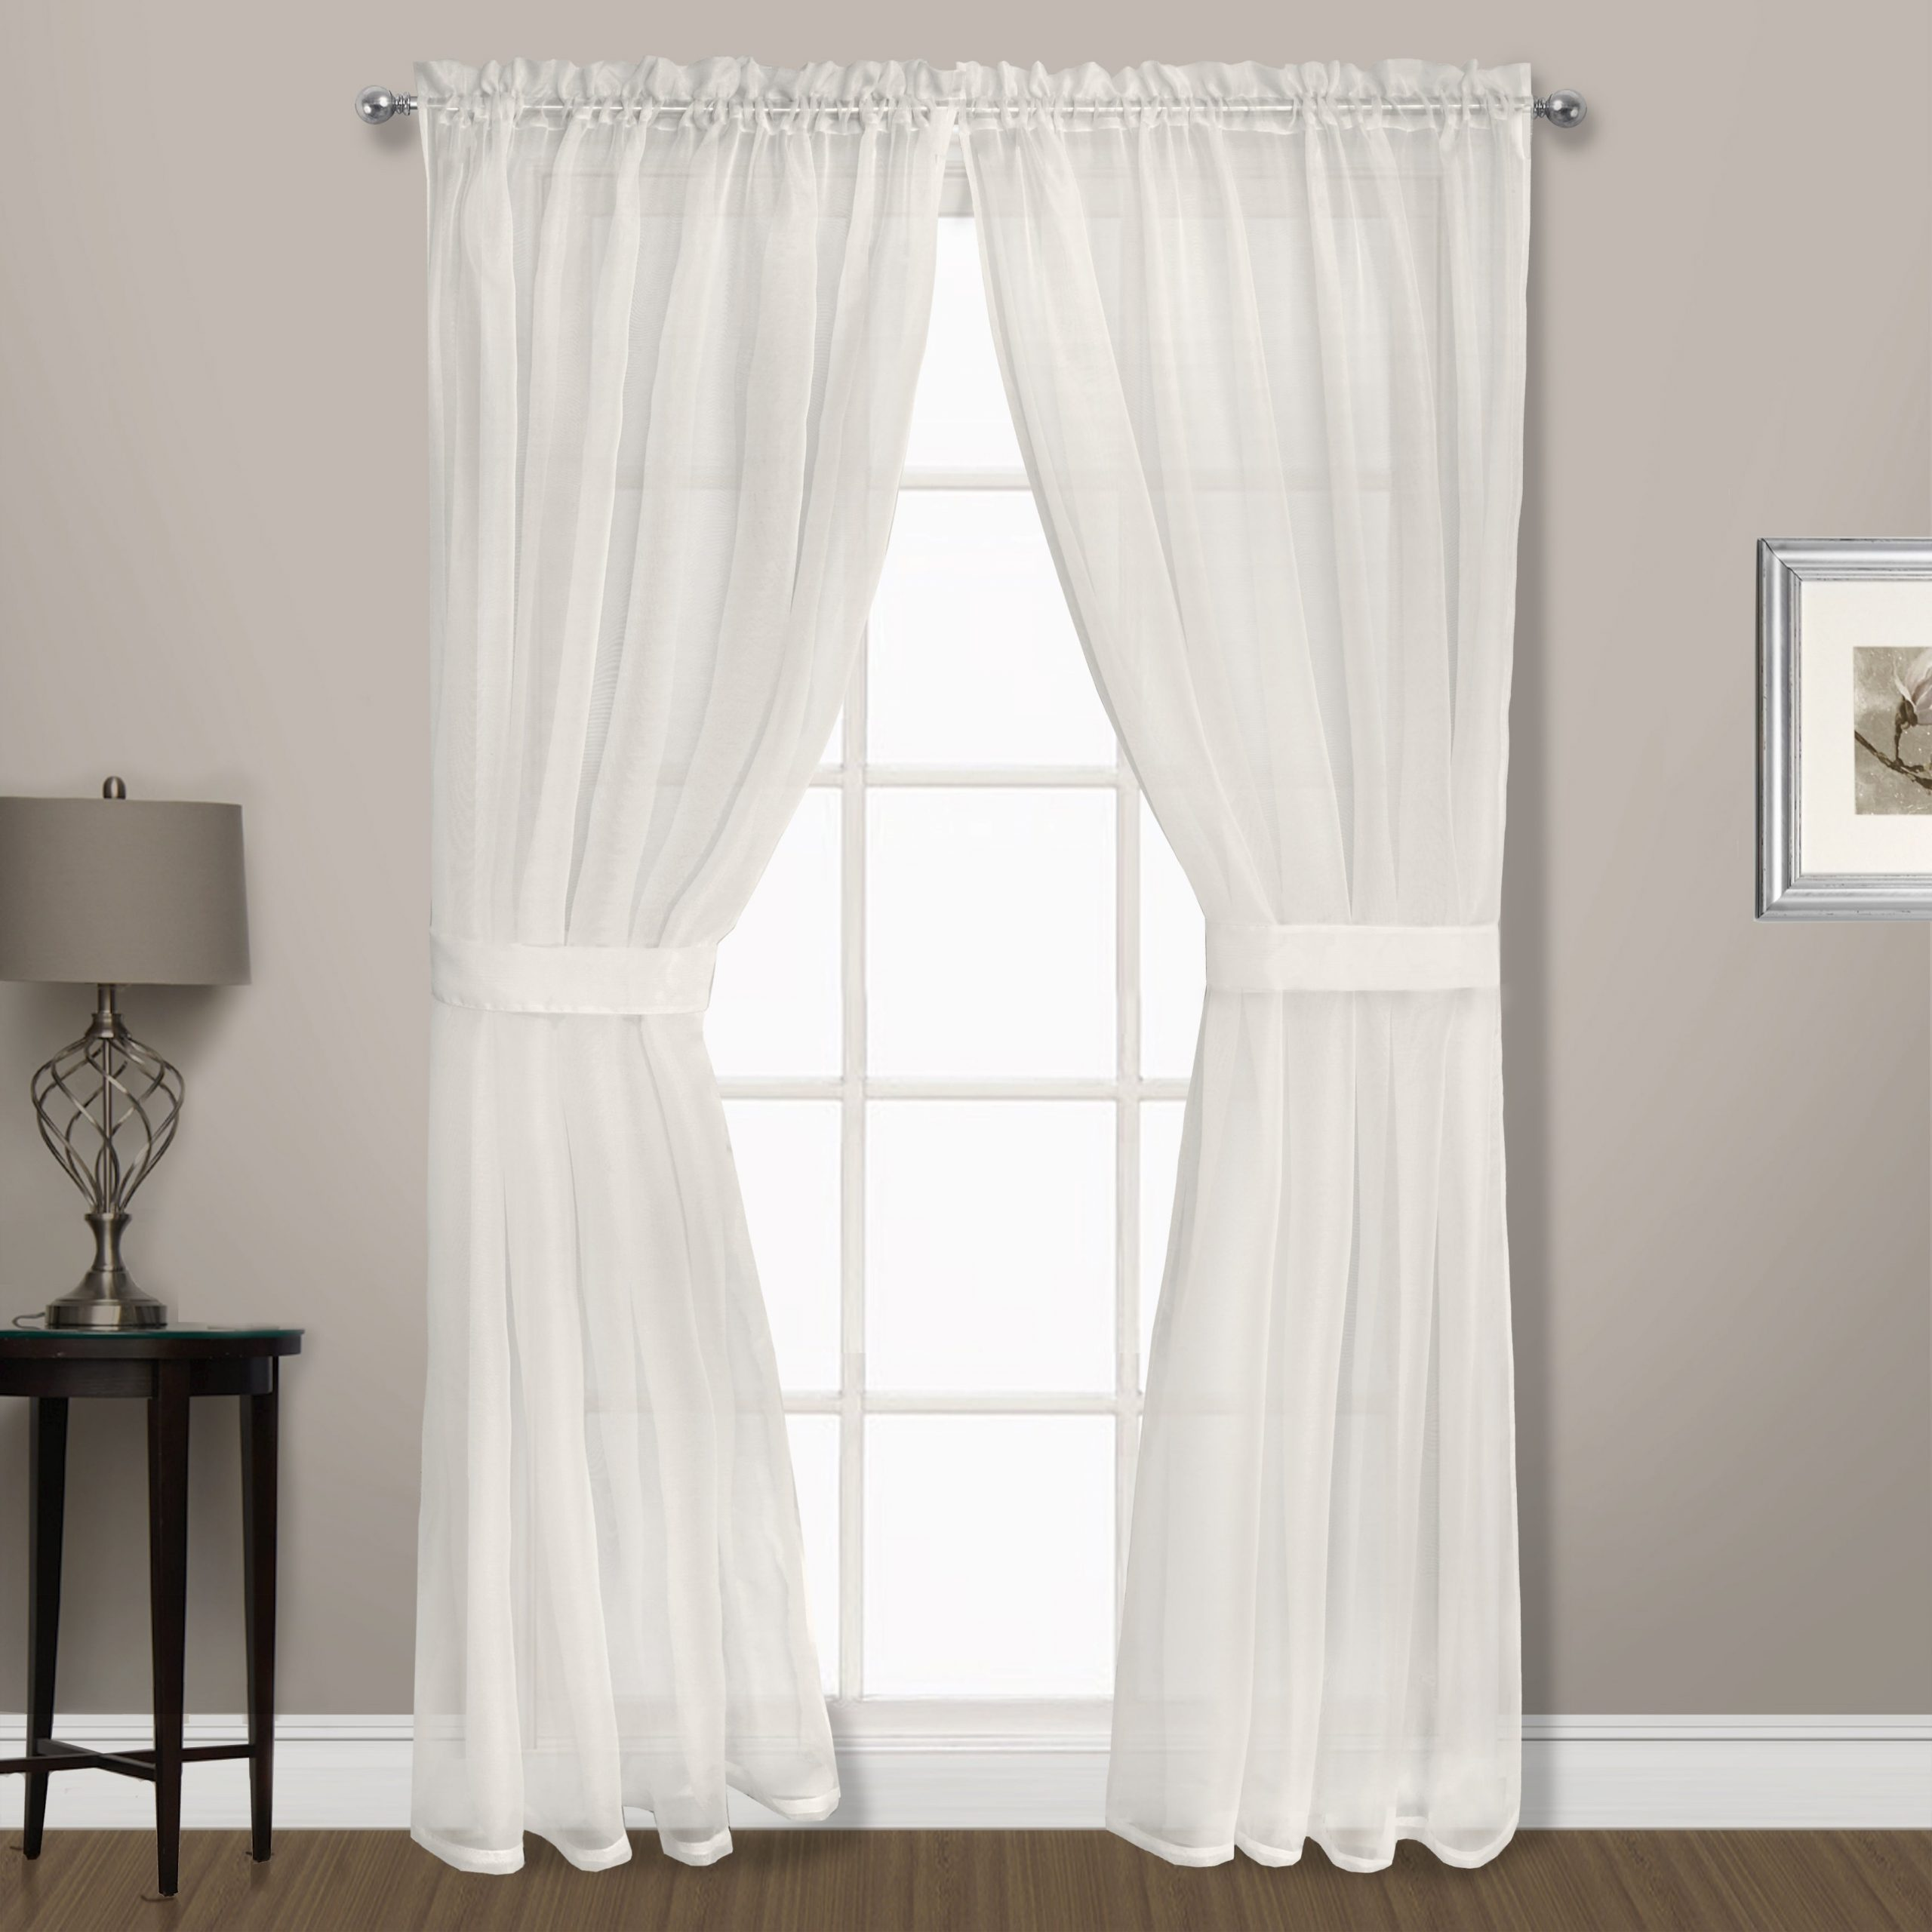 Famous Luxury Collection Summit Sheer Curtain Panel Pairs With Buy 54 Inches, 2 Panel Sheer Curtains Online At Overstock (Gallery 7 of 20)